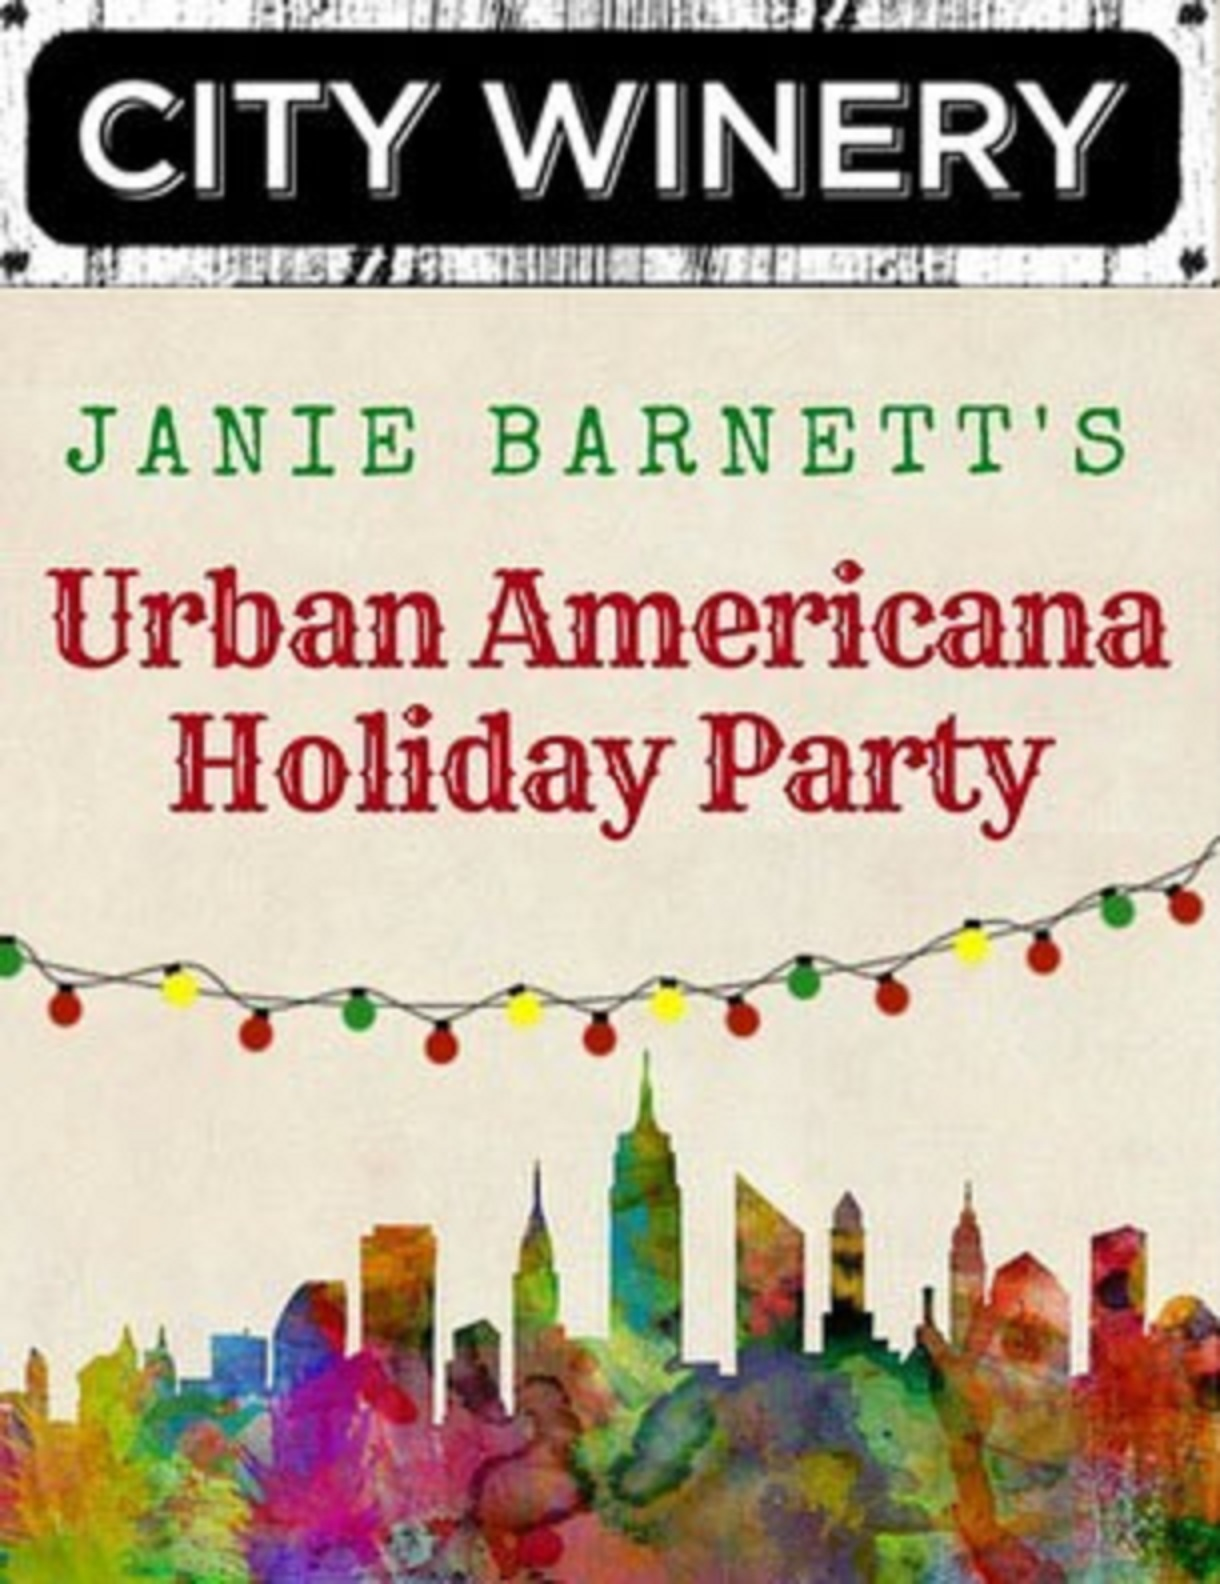 JANIE BARNETT TO PRESENT THE FIRST ANNUAL URBAN AMERICANA HOLIDAY PARTY  AT  CITY WINERY